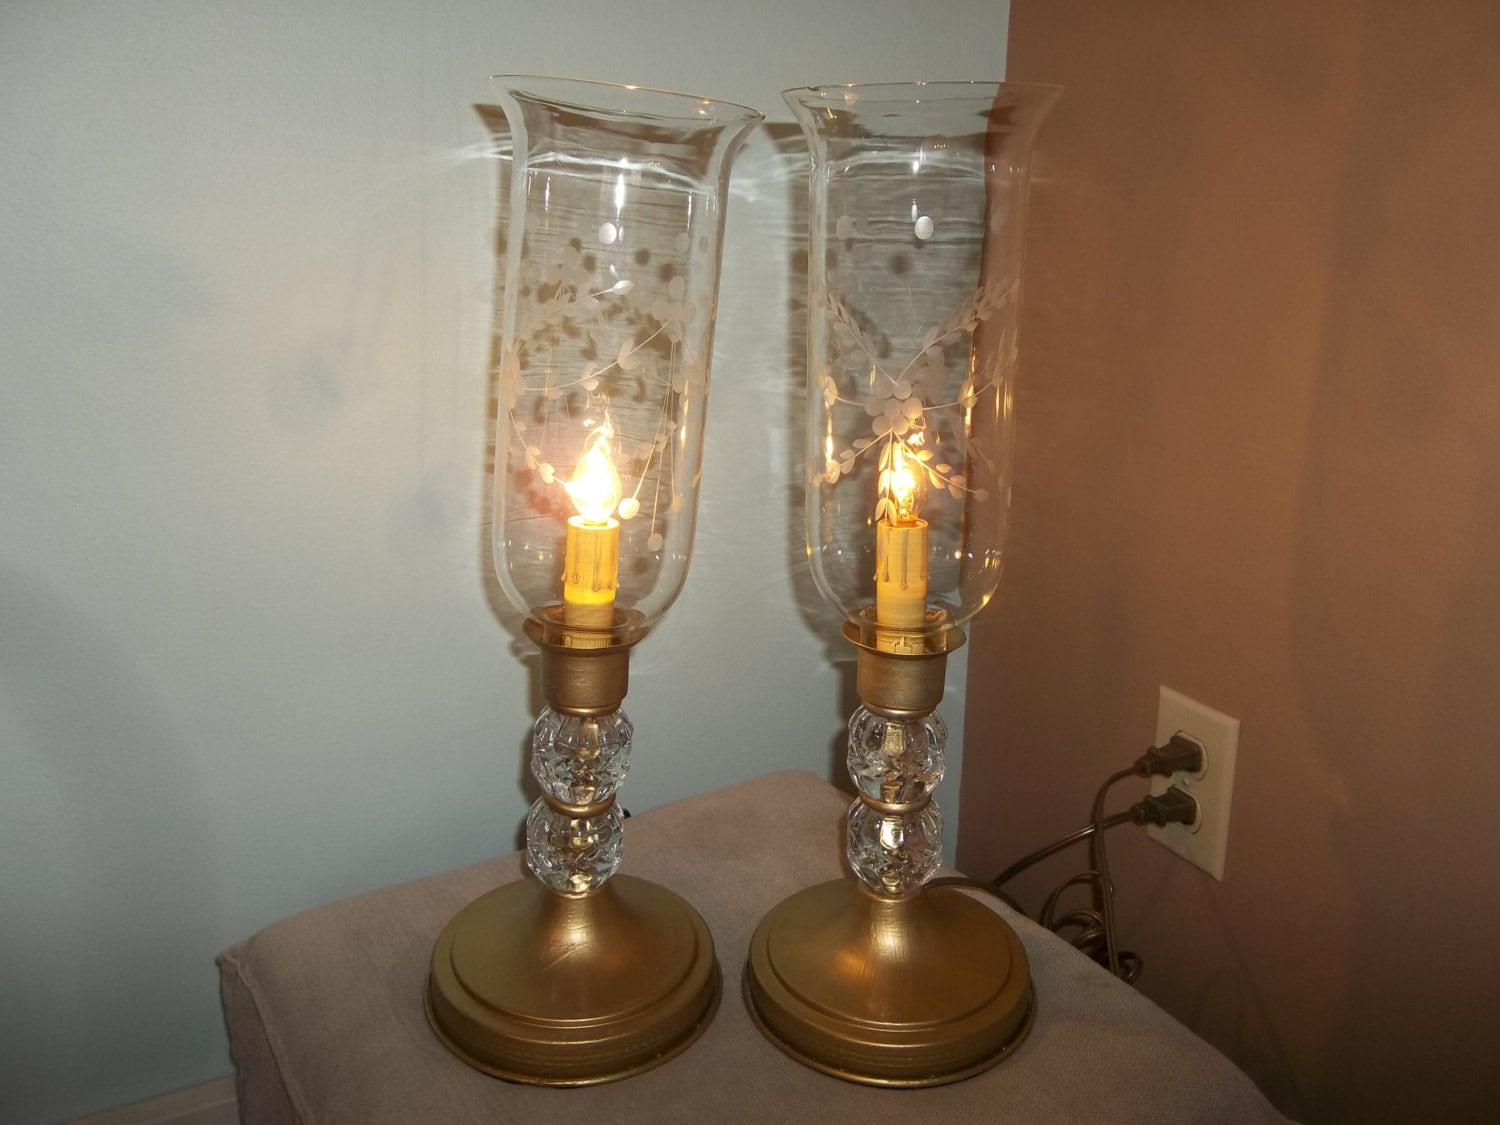 Wholesale Home Decor Suppliers China Crystal Hurricane Lamp Candle Holder Hot Girls Wallpaper